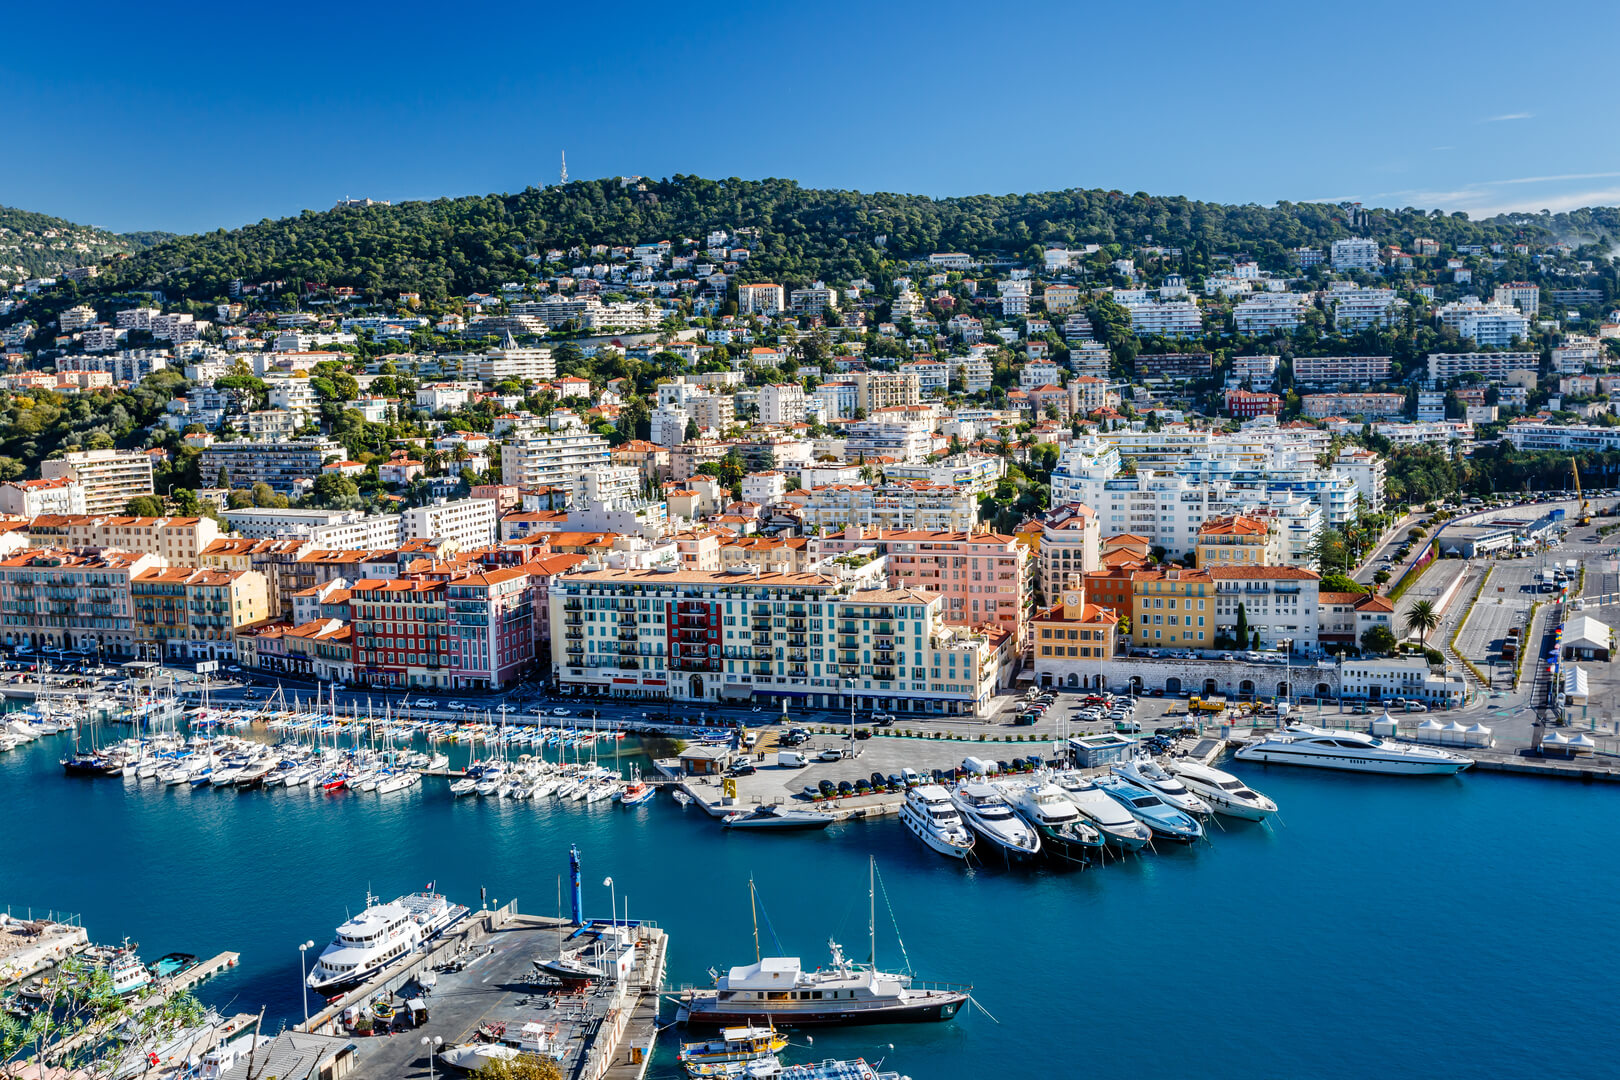 Aerial view of the port of Nice and luxury yachts, Côte d'Azur, France